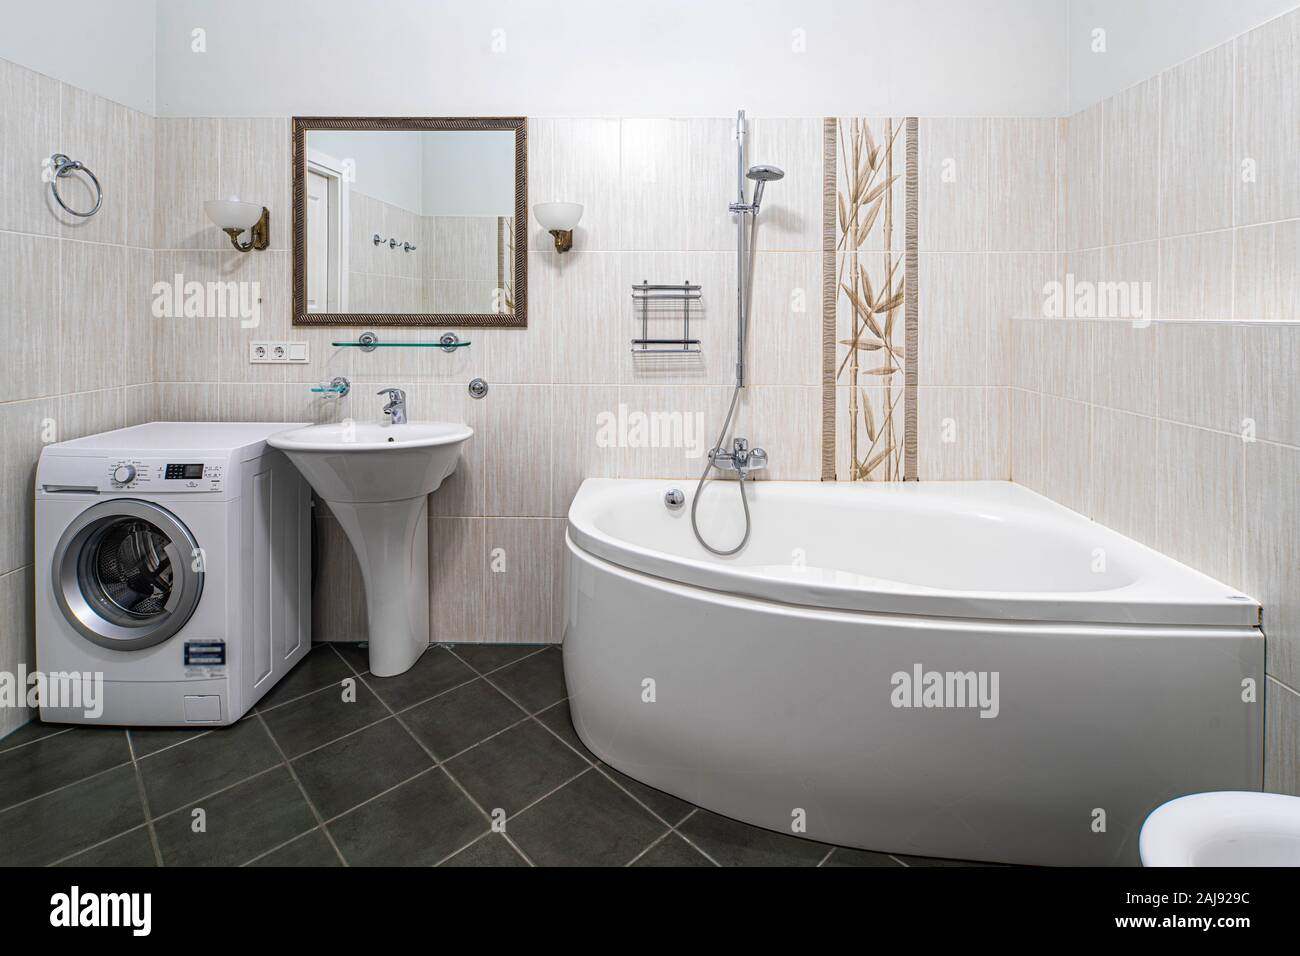 Sink Bath Washing Machine High Resolution Stock Photography And Images Alamy